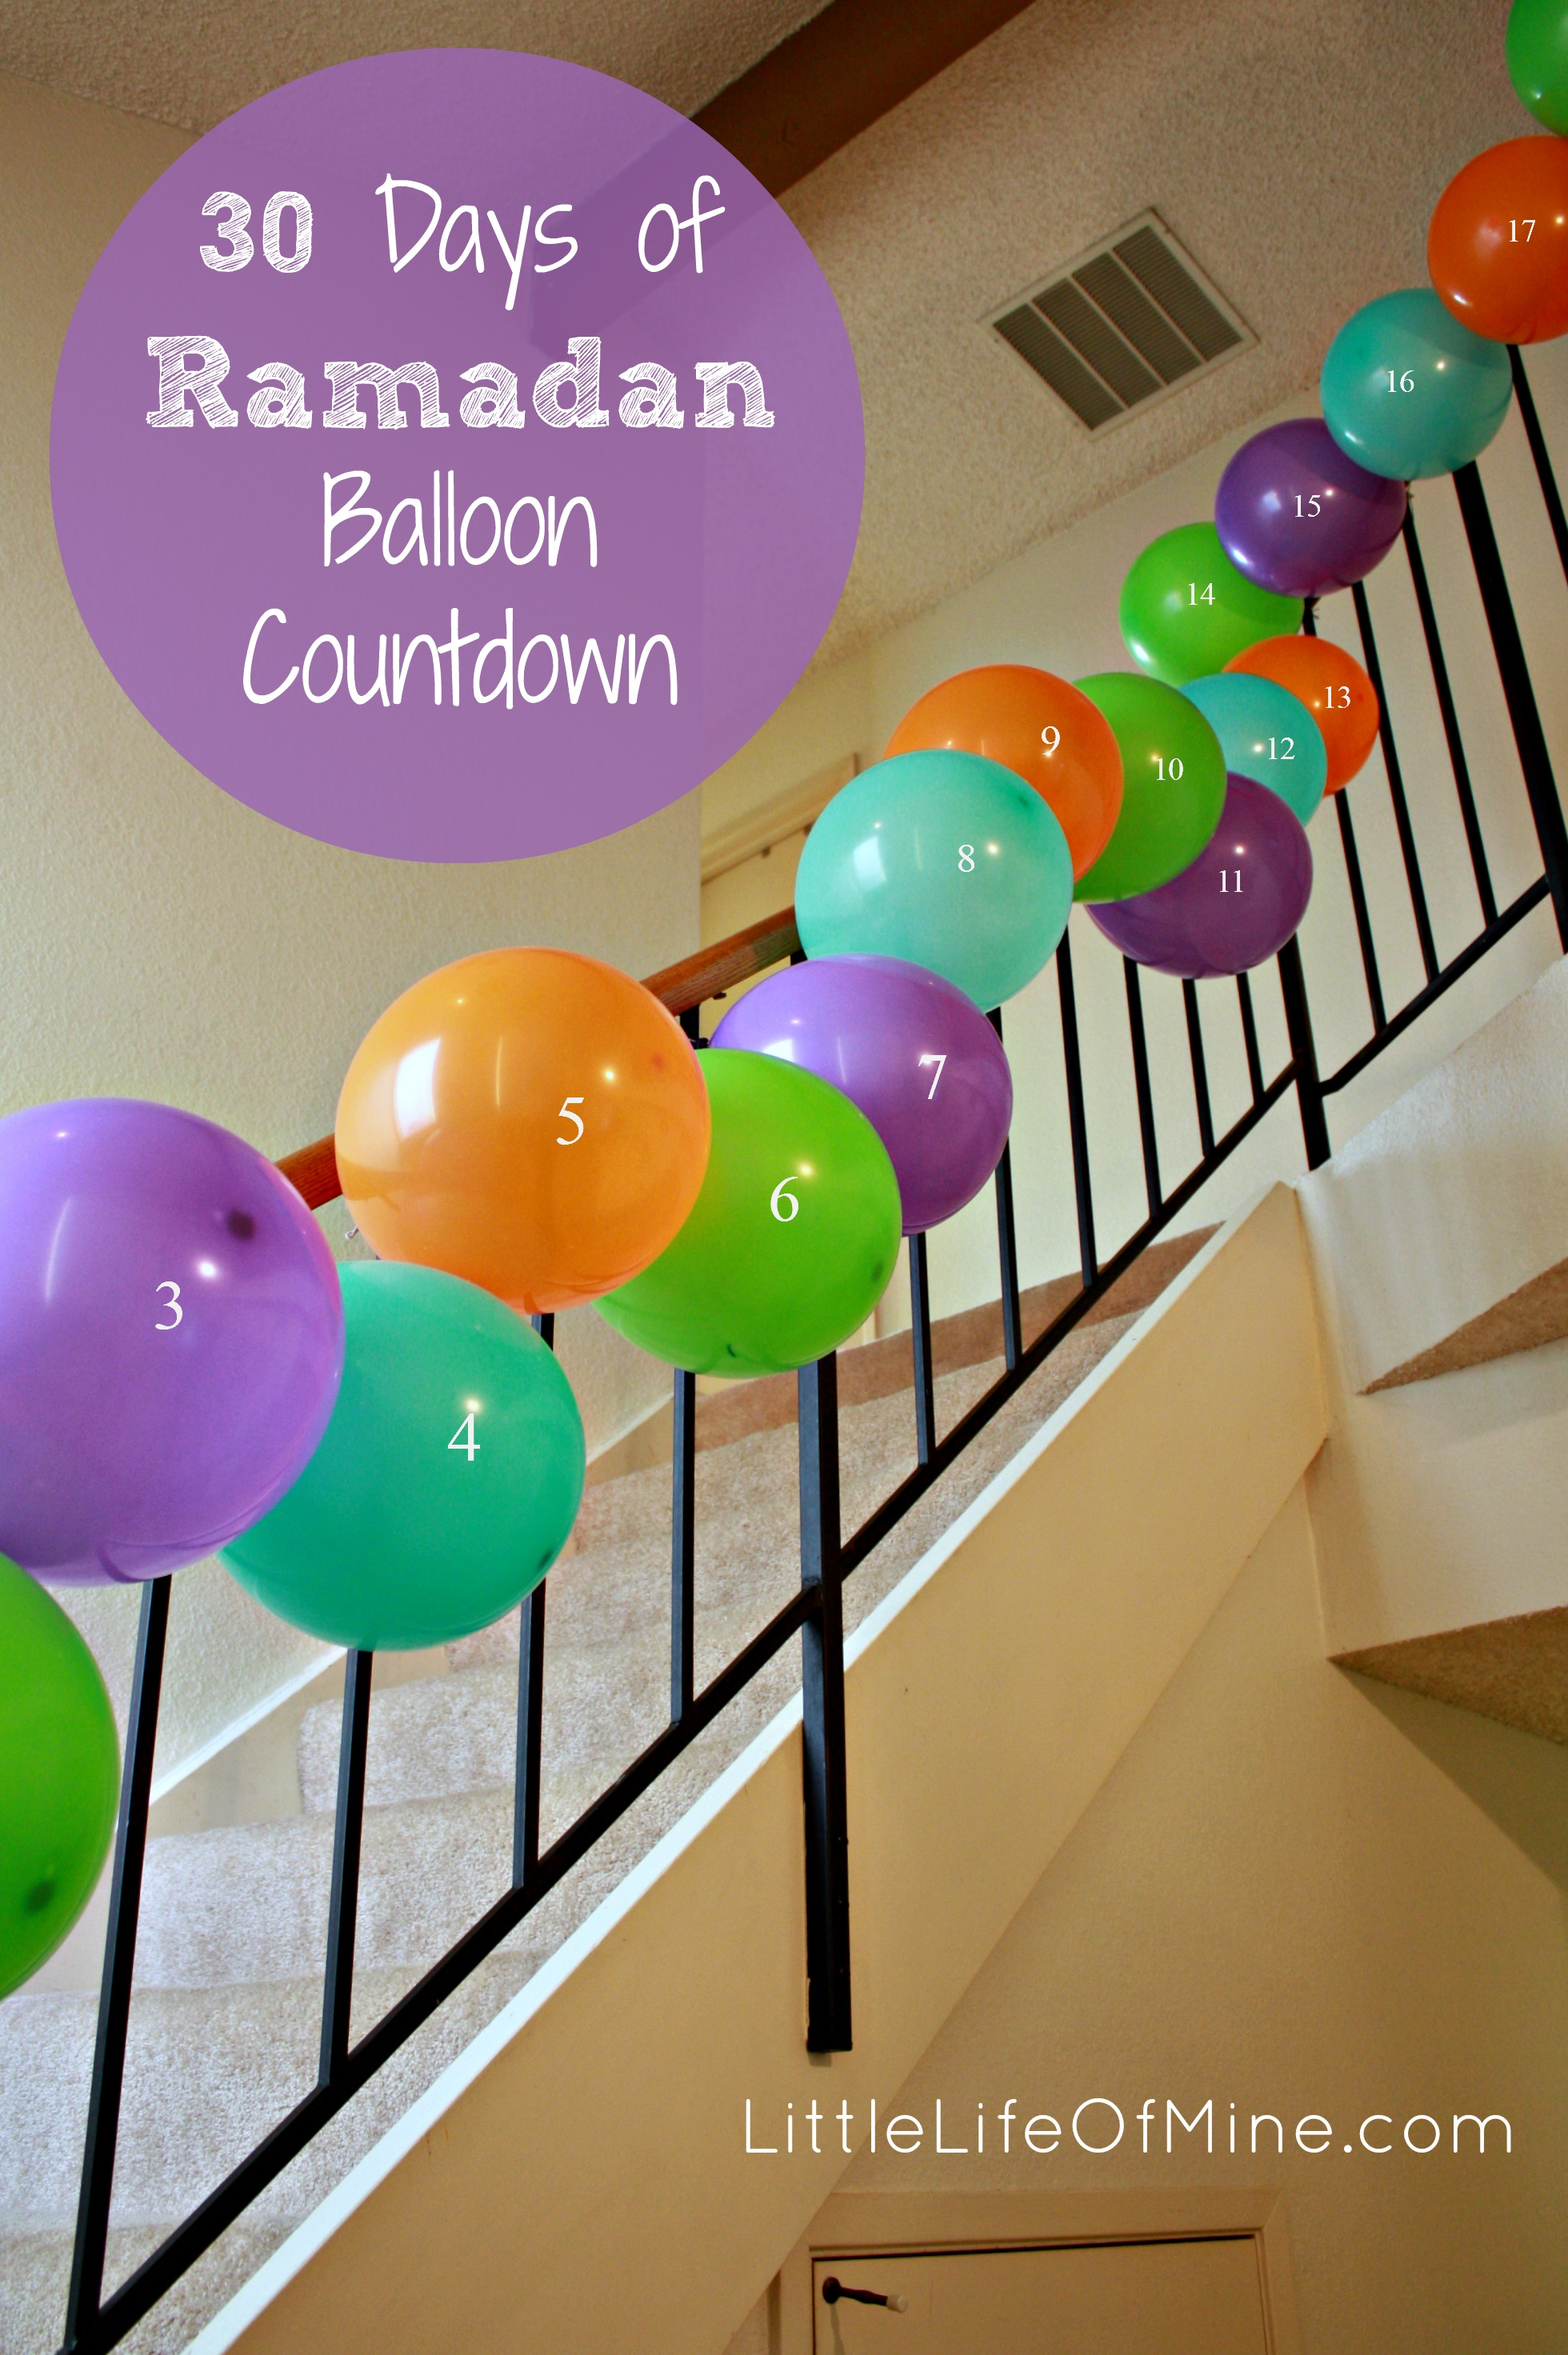 30 Days of Ramadan Balloon Countdown